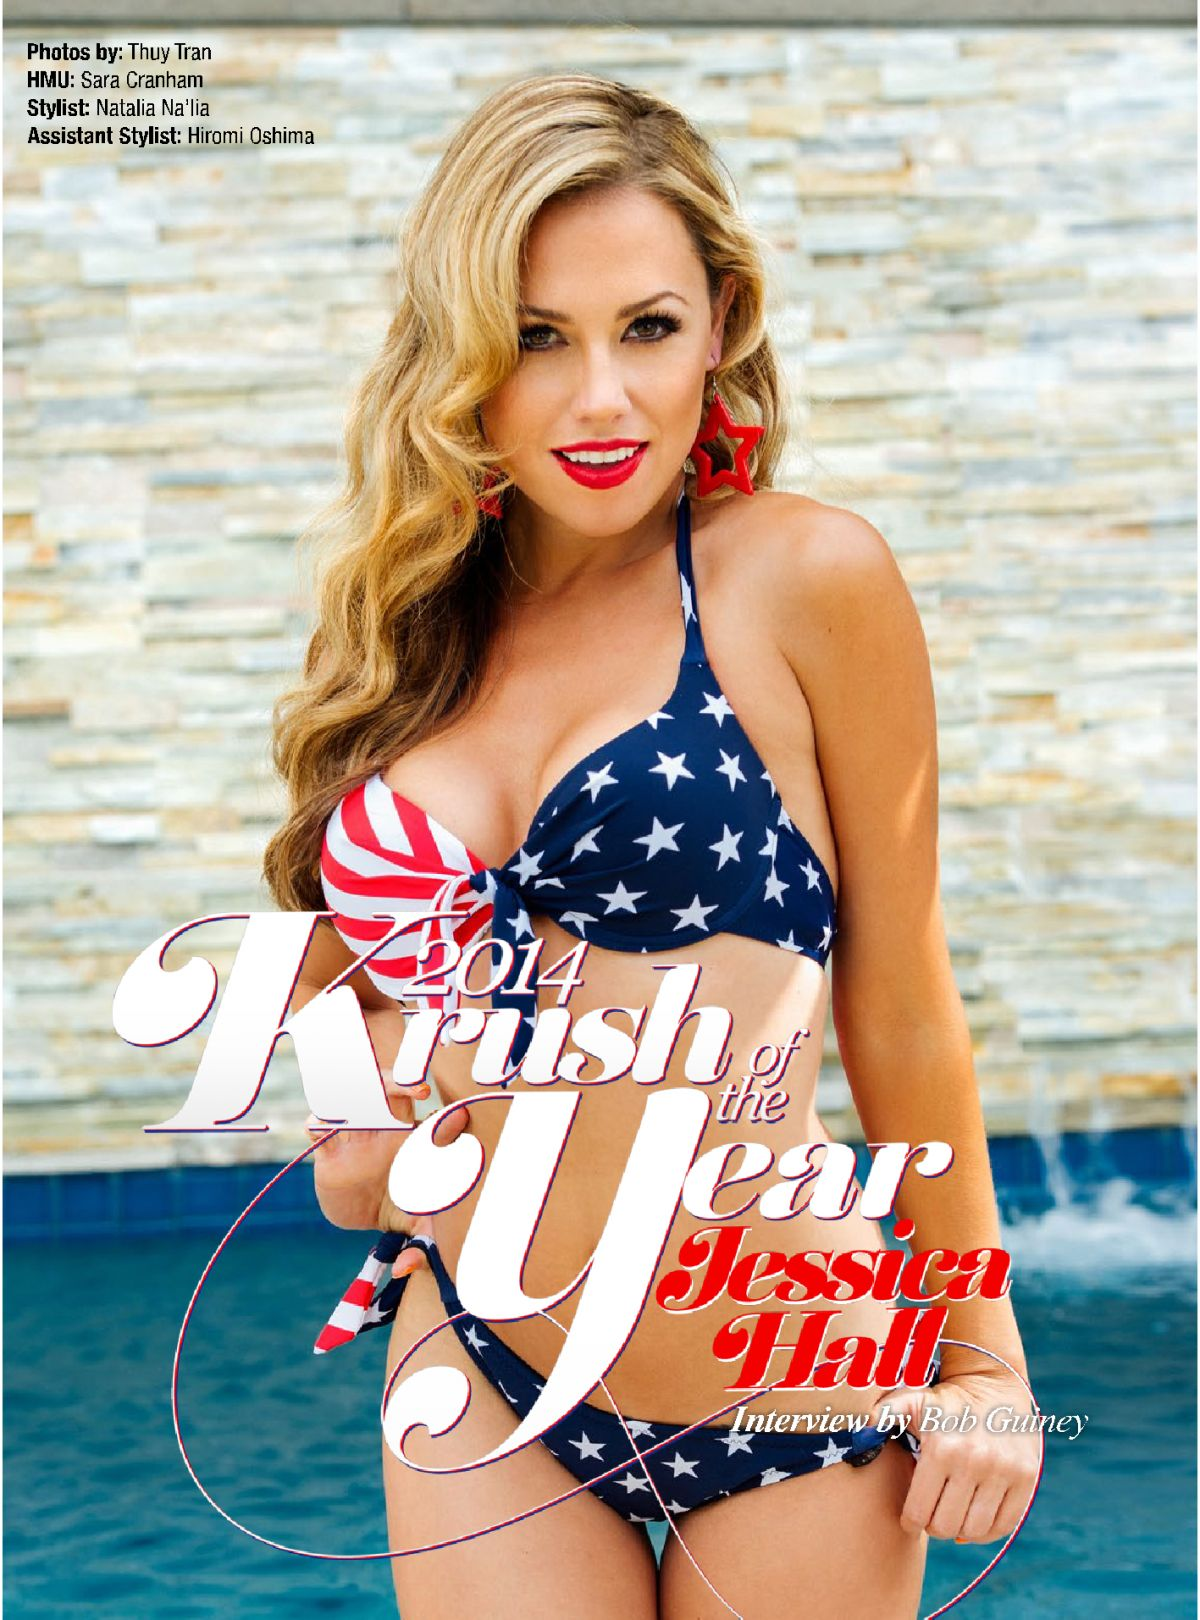 JESSICA HALL in Kandy Magazine, July 2014 Issue